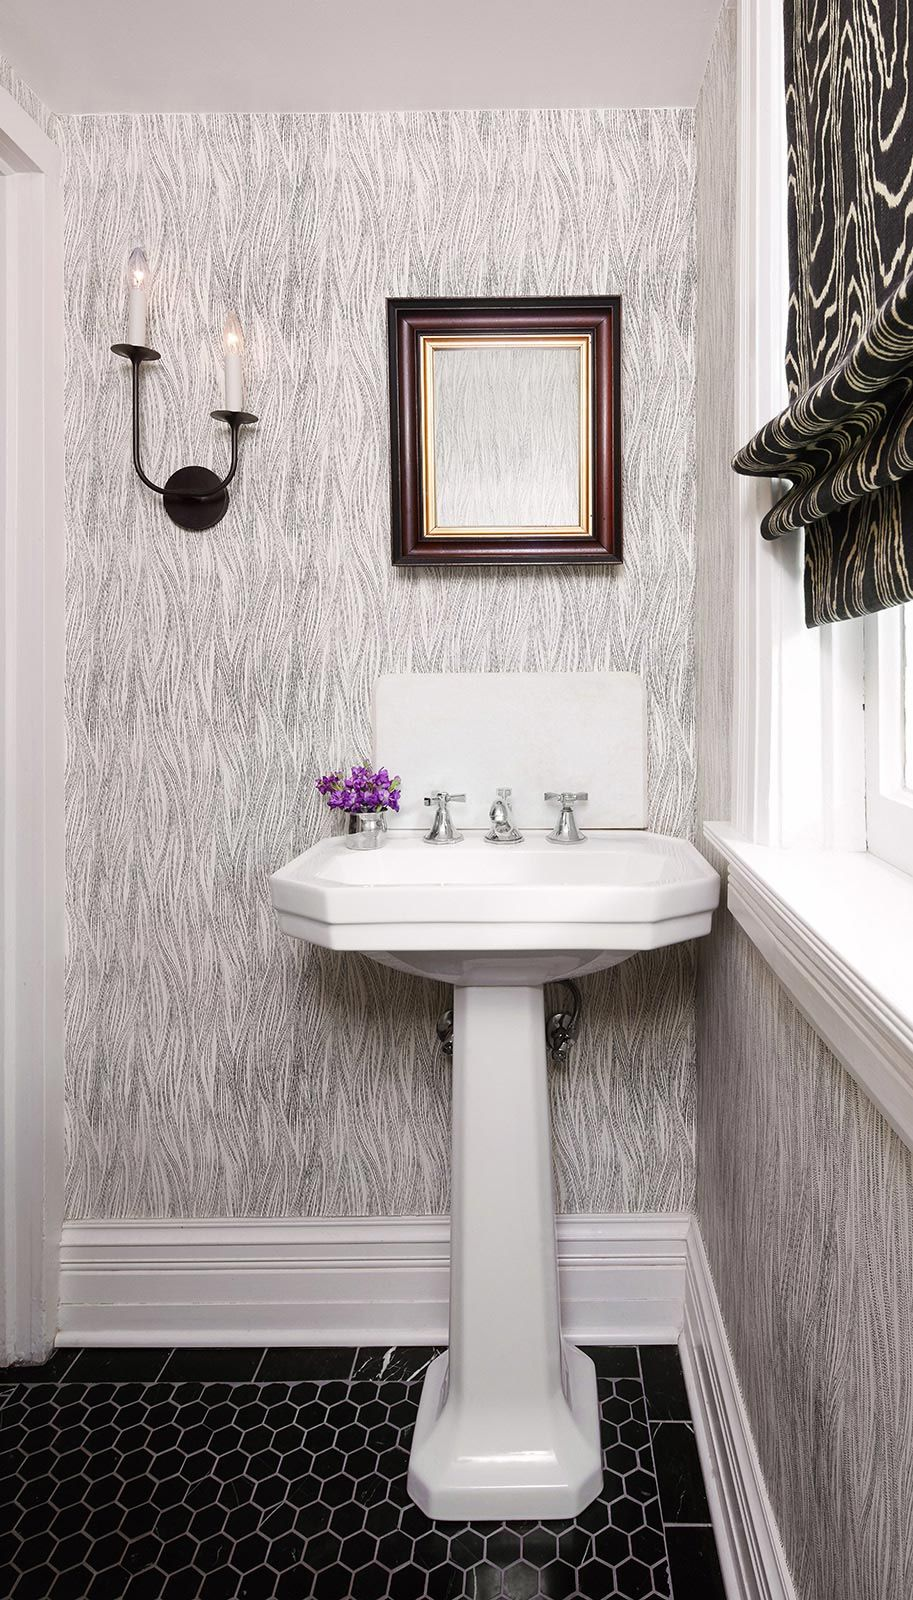 Grey and white wallpaper design and black tiled floor in powder room ...